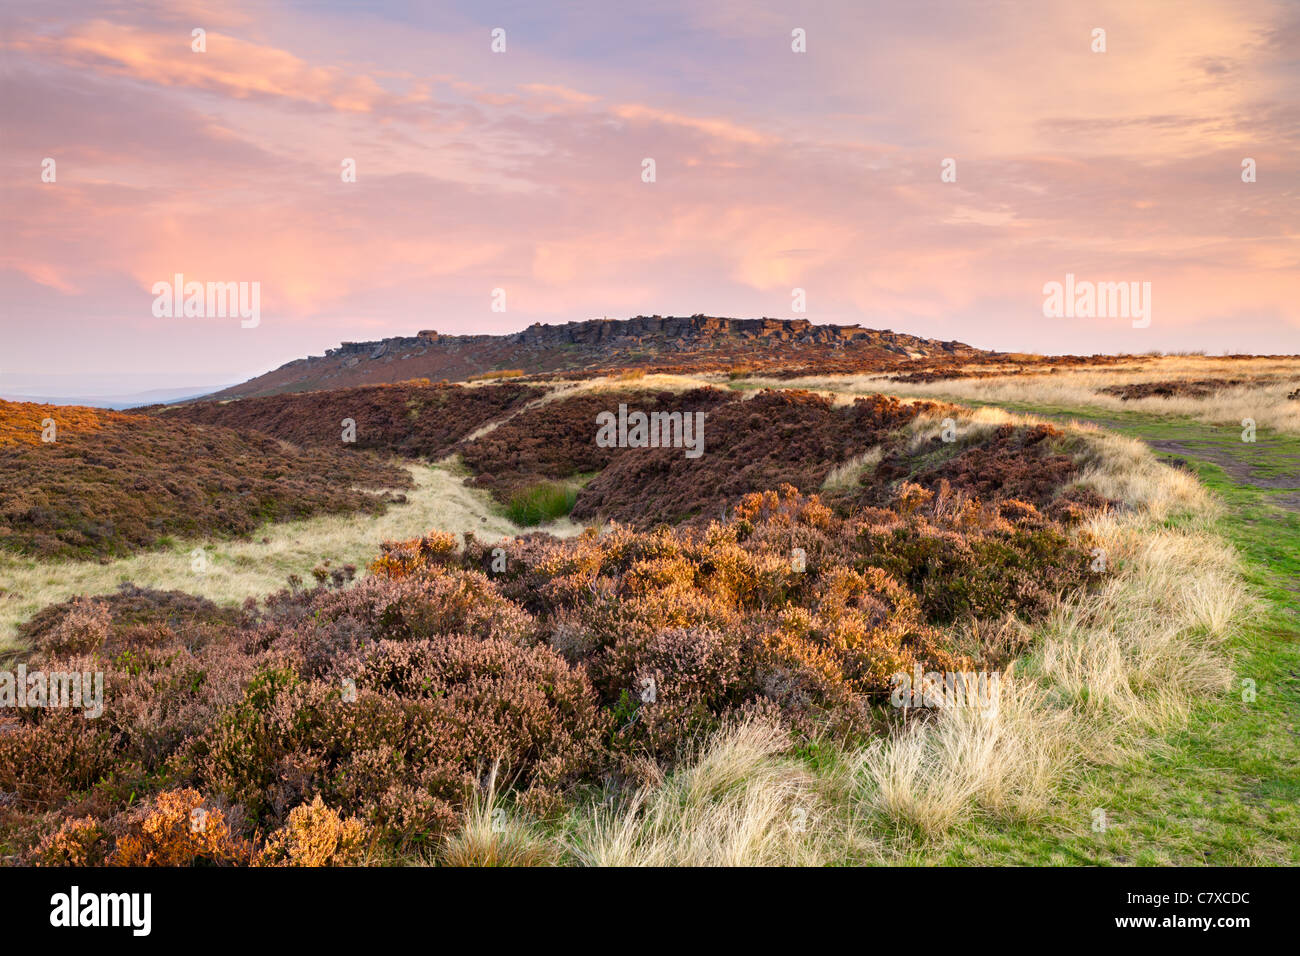 Sunrise, Stanage Edge, Peak District National Park, England, UK - Stock Image